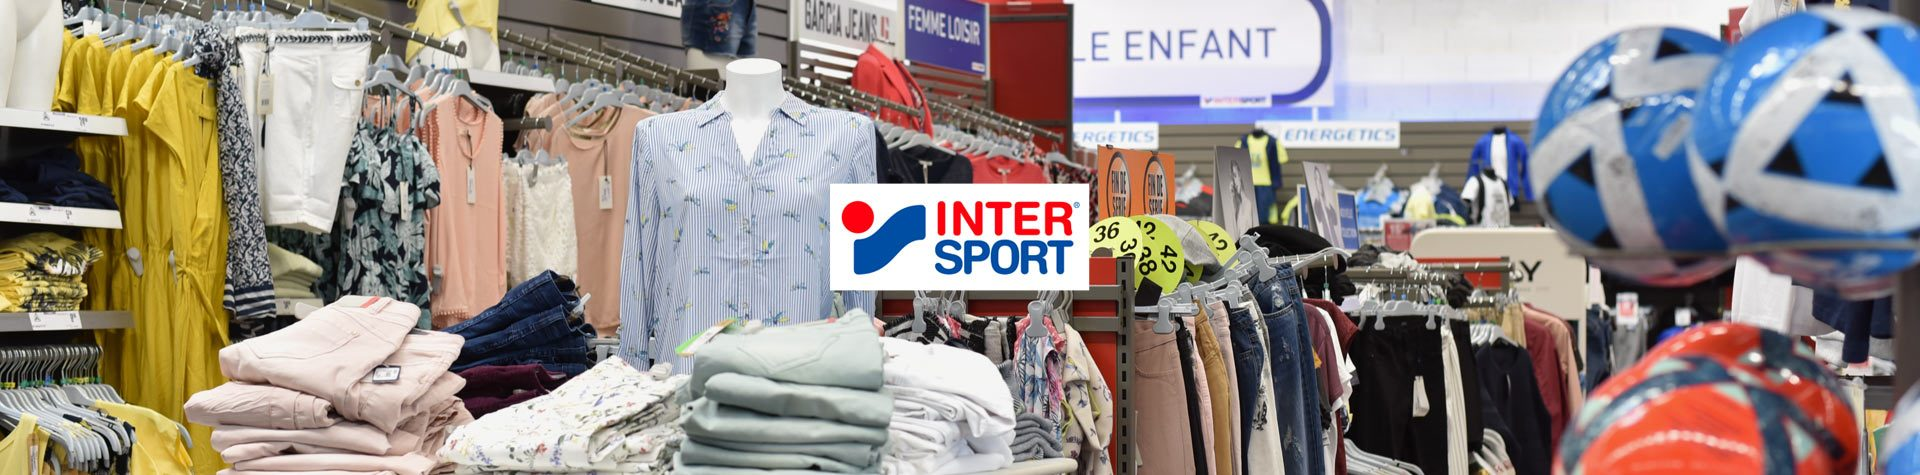 Photo bannière avec logo intersport